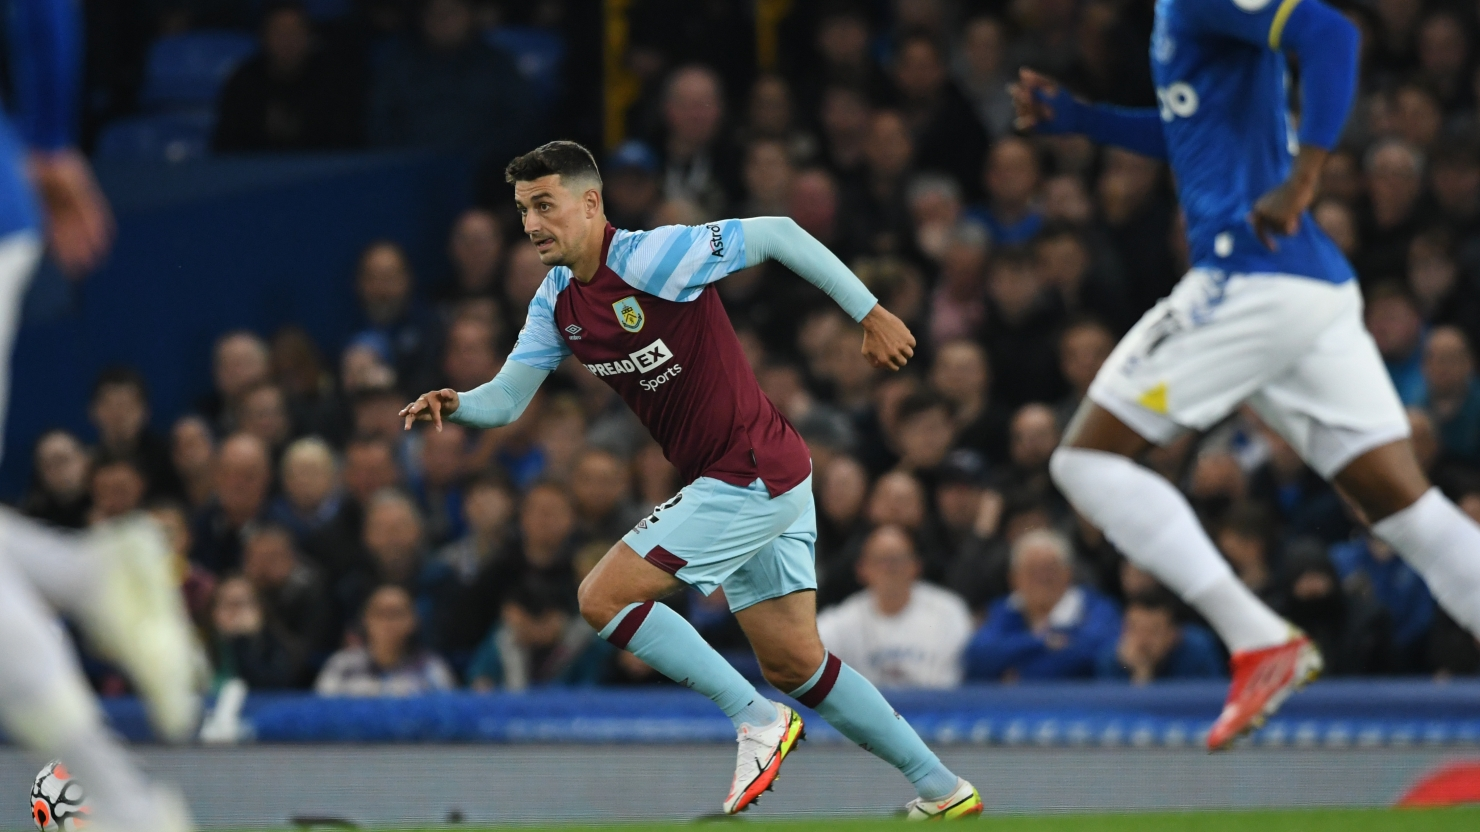 LOWTON: WE NEED TO BE ON IT